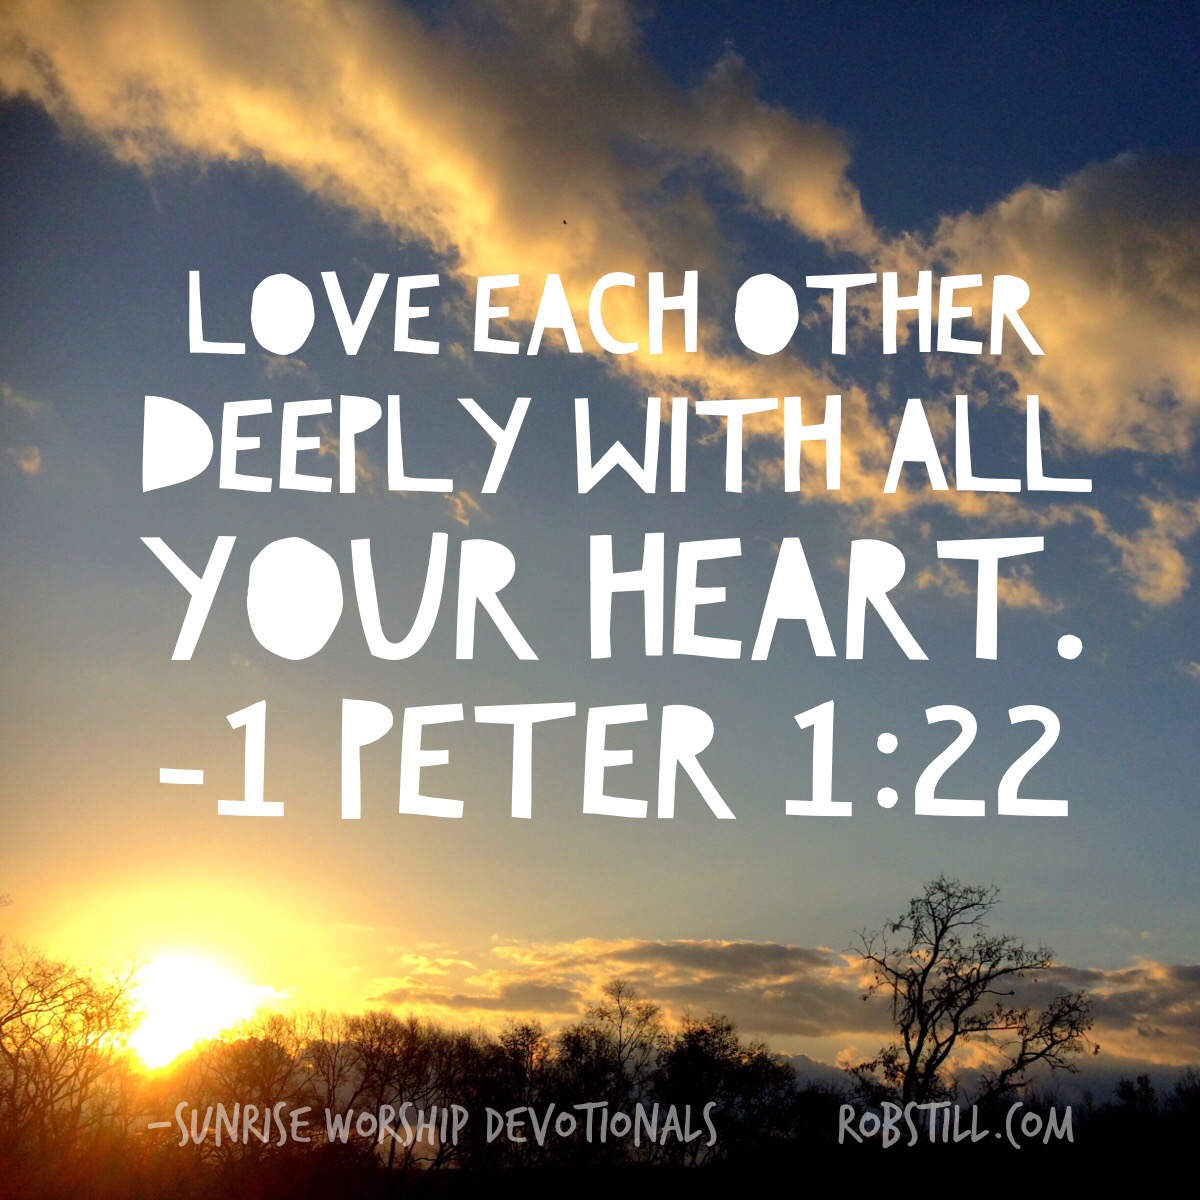 Love Each Other Deeply: Love Each Other Deeply With All Your Heart